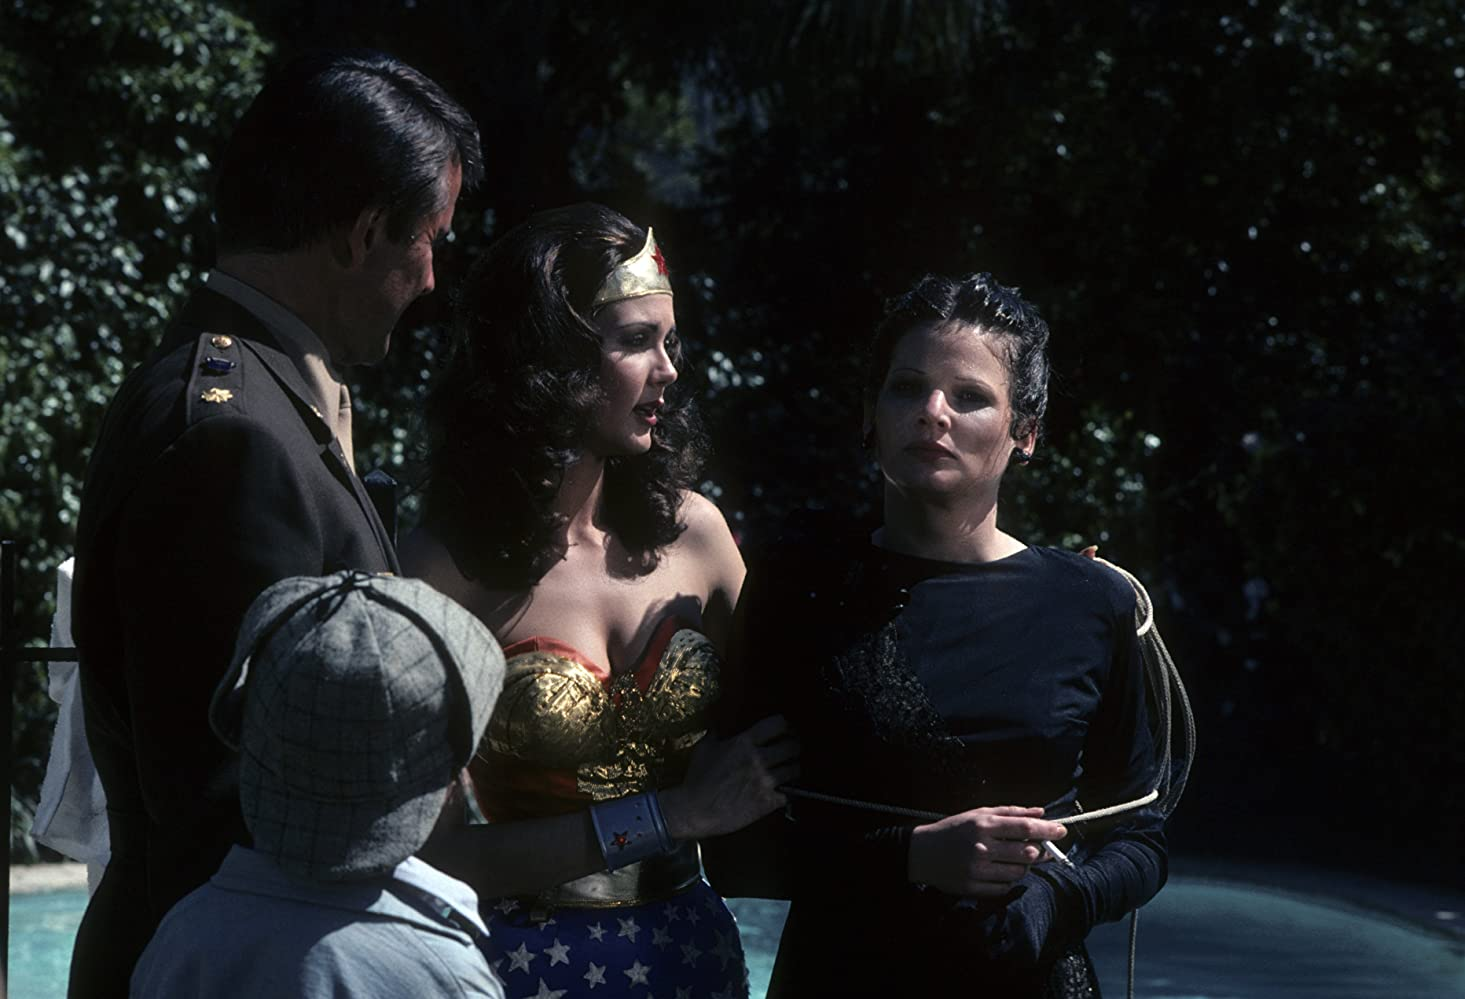 Lynda Carter, Christine Belford, and Lyle Waggoner in Wonder Woman (1975)